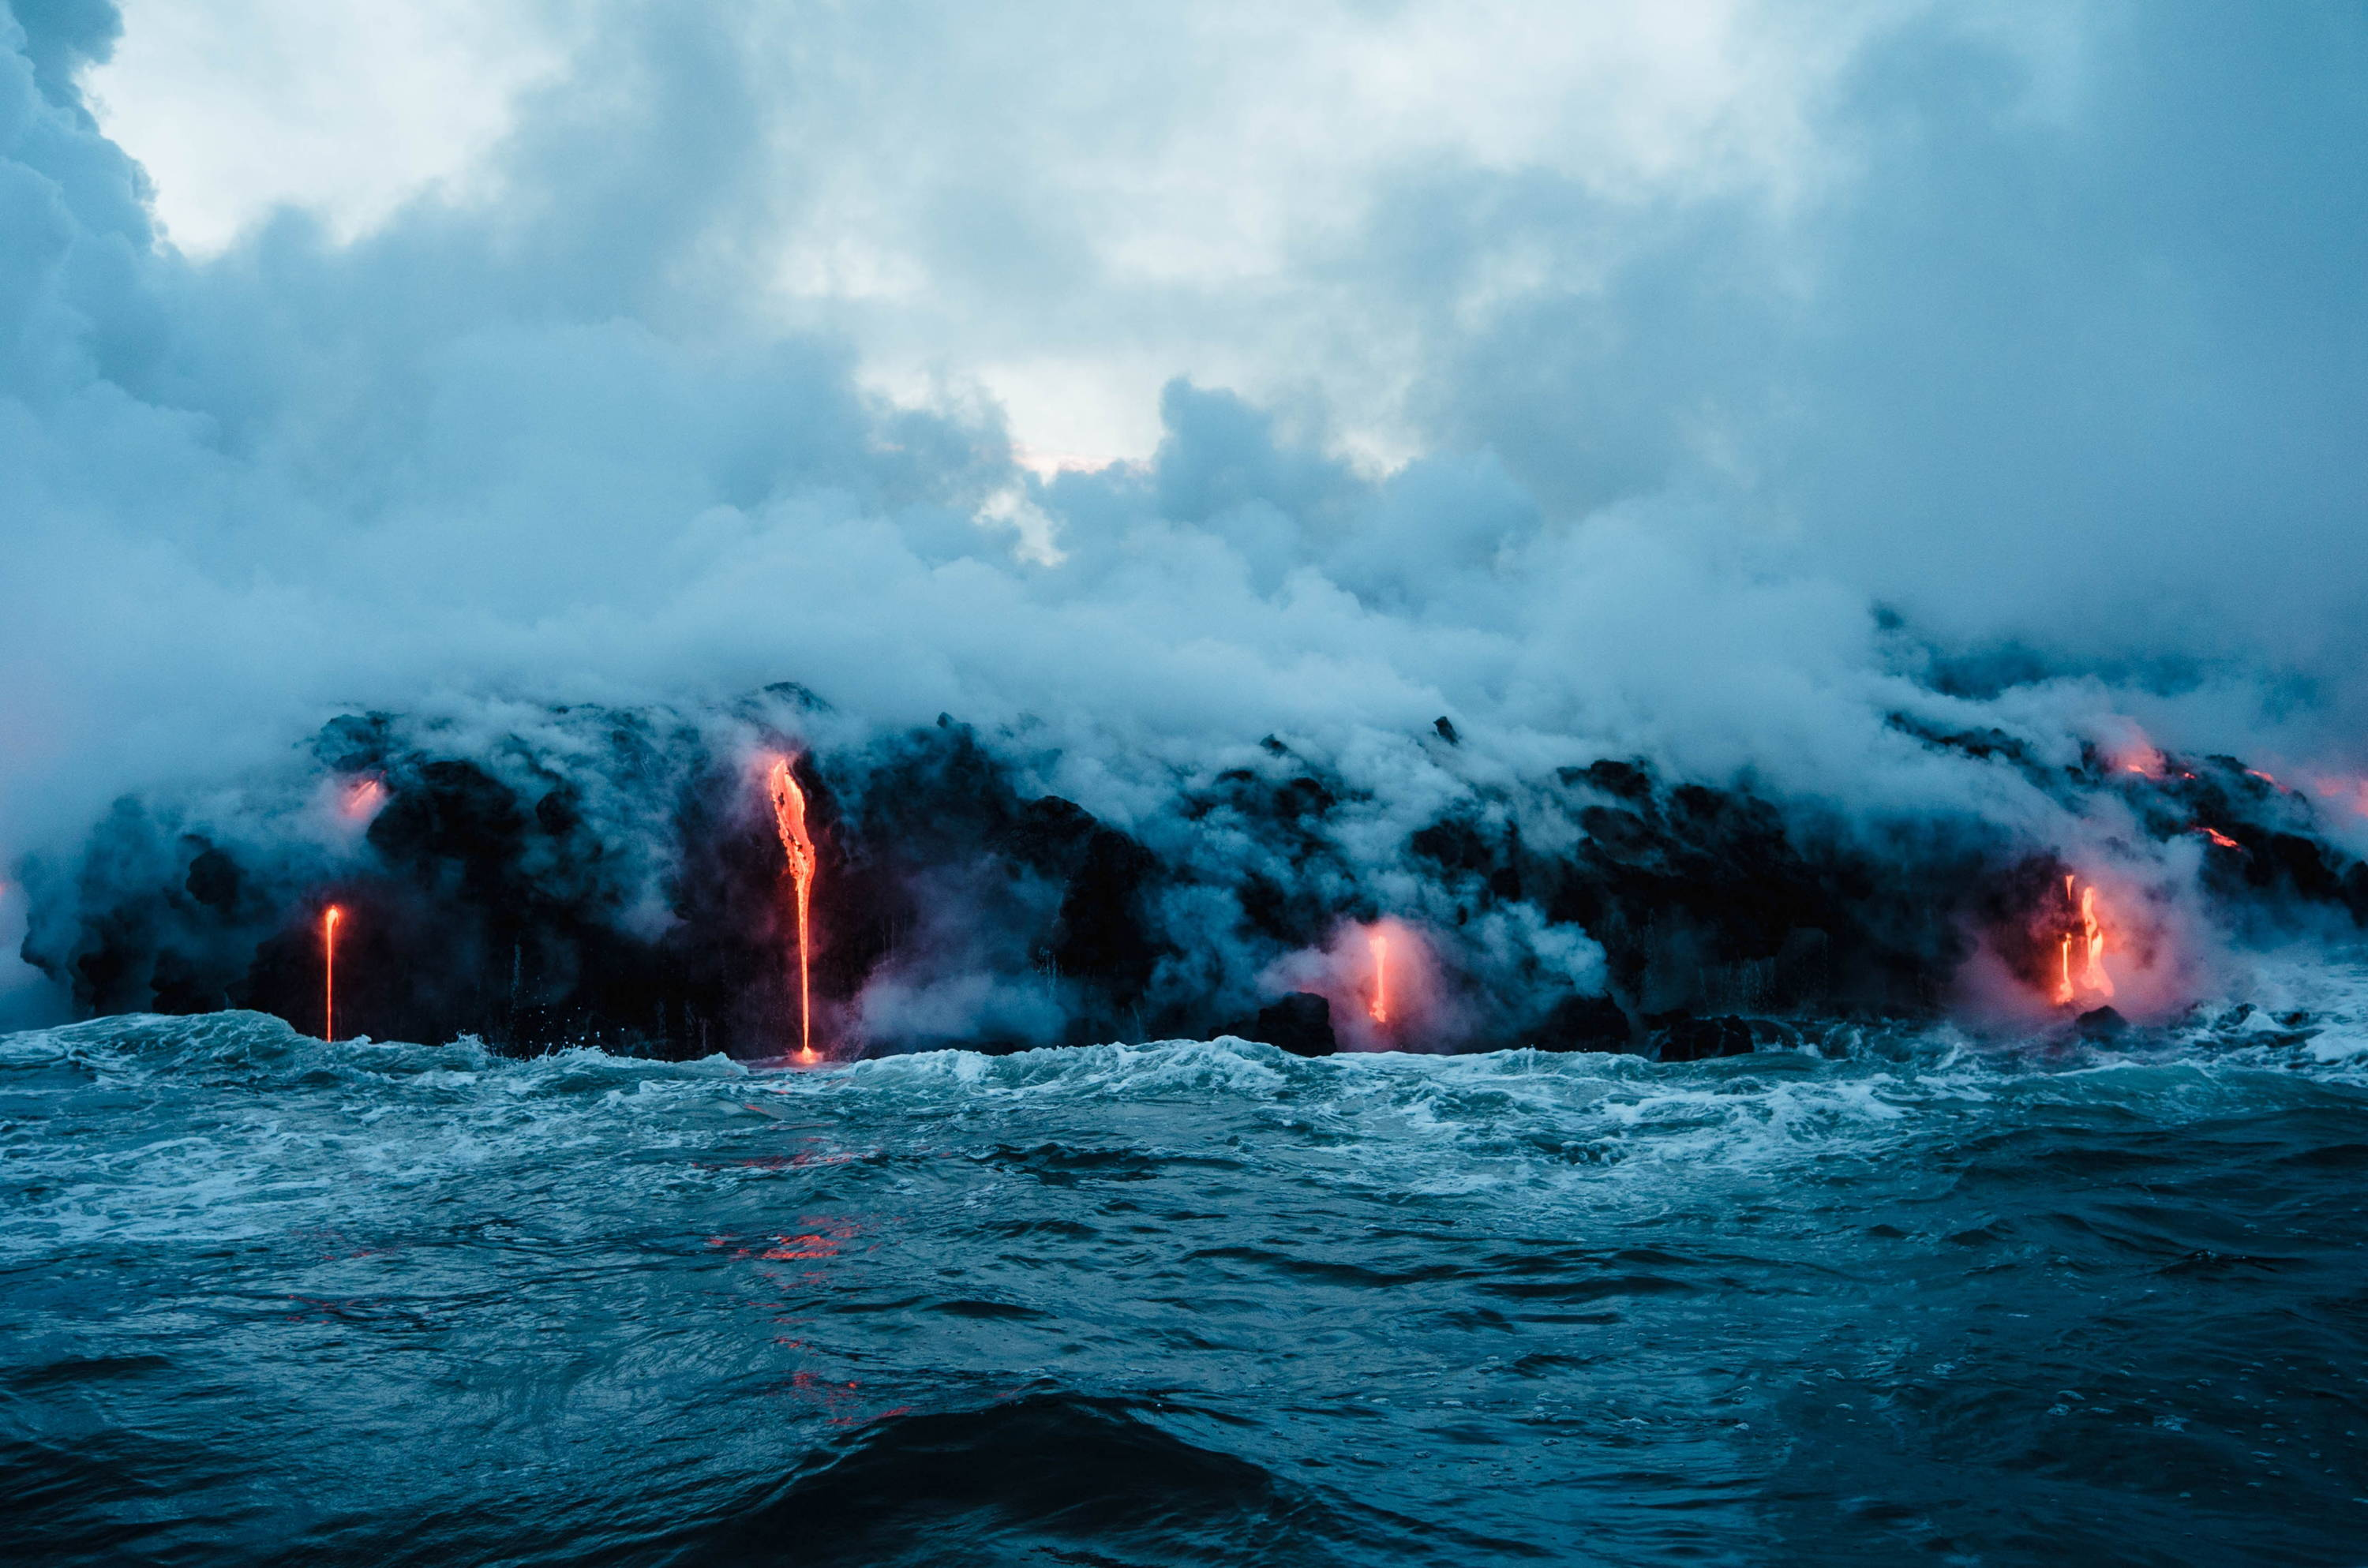 Hawaii Volcano Story: Kilauea and Hawaii Volcanoes National Park. Lava flows over the cliff's edge and into the ocean on the Big Island in Hawaii.